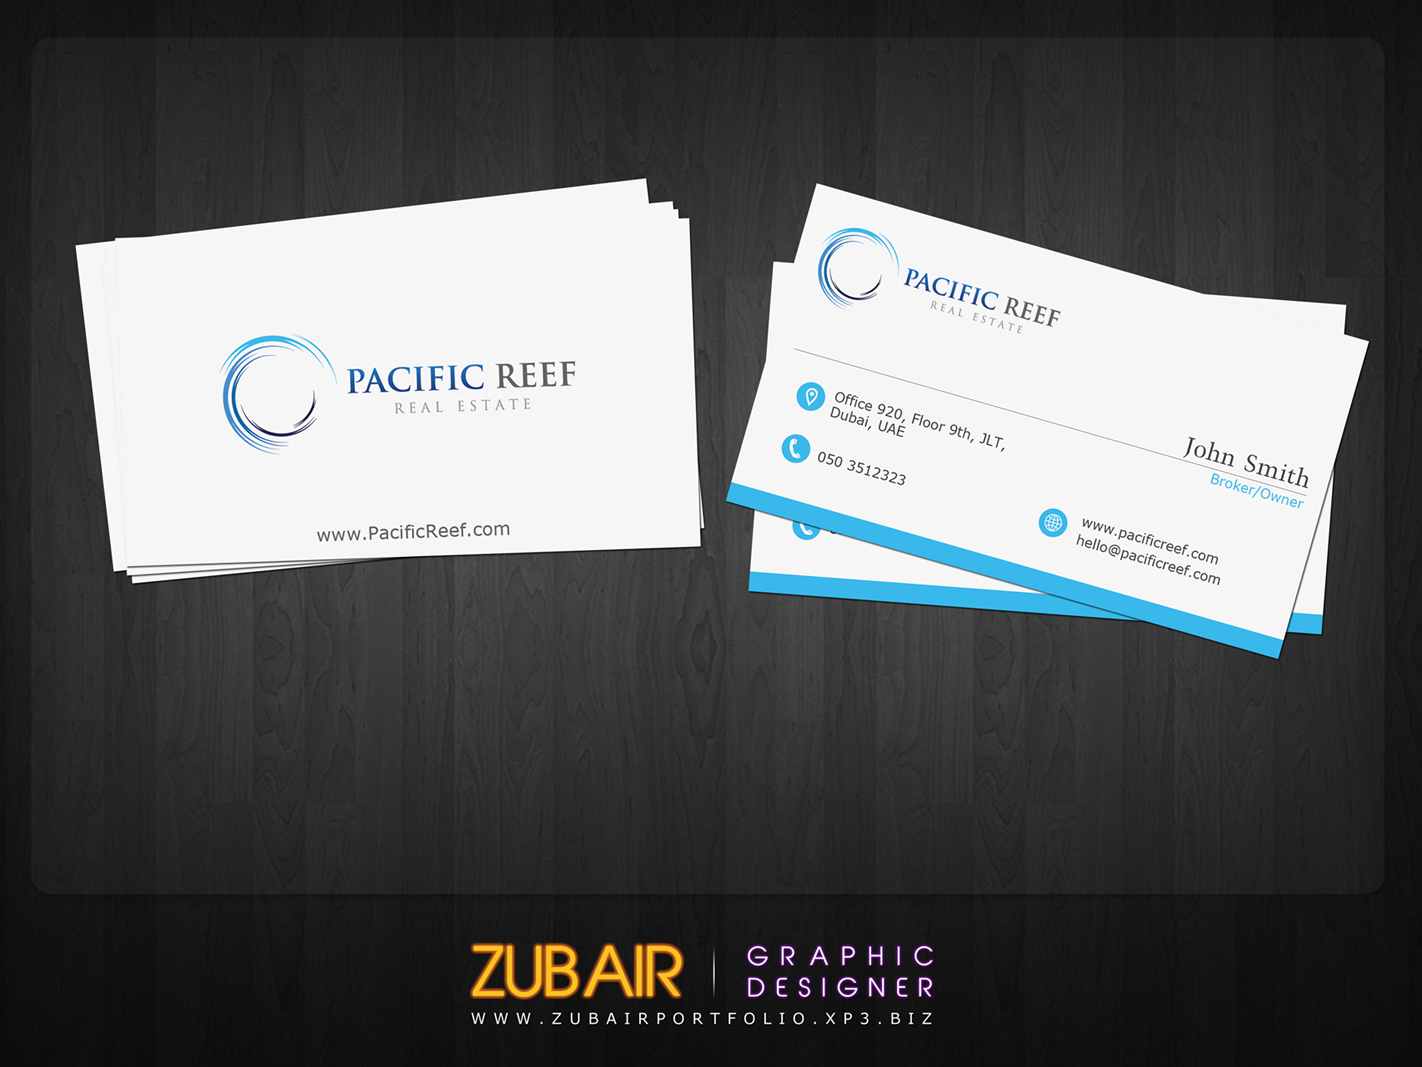 Business business card design for pacific reef real estate by zubair business card design by zubair for pacific reef real estate design 3683587 reheart Gallery